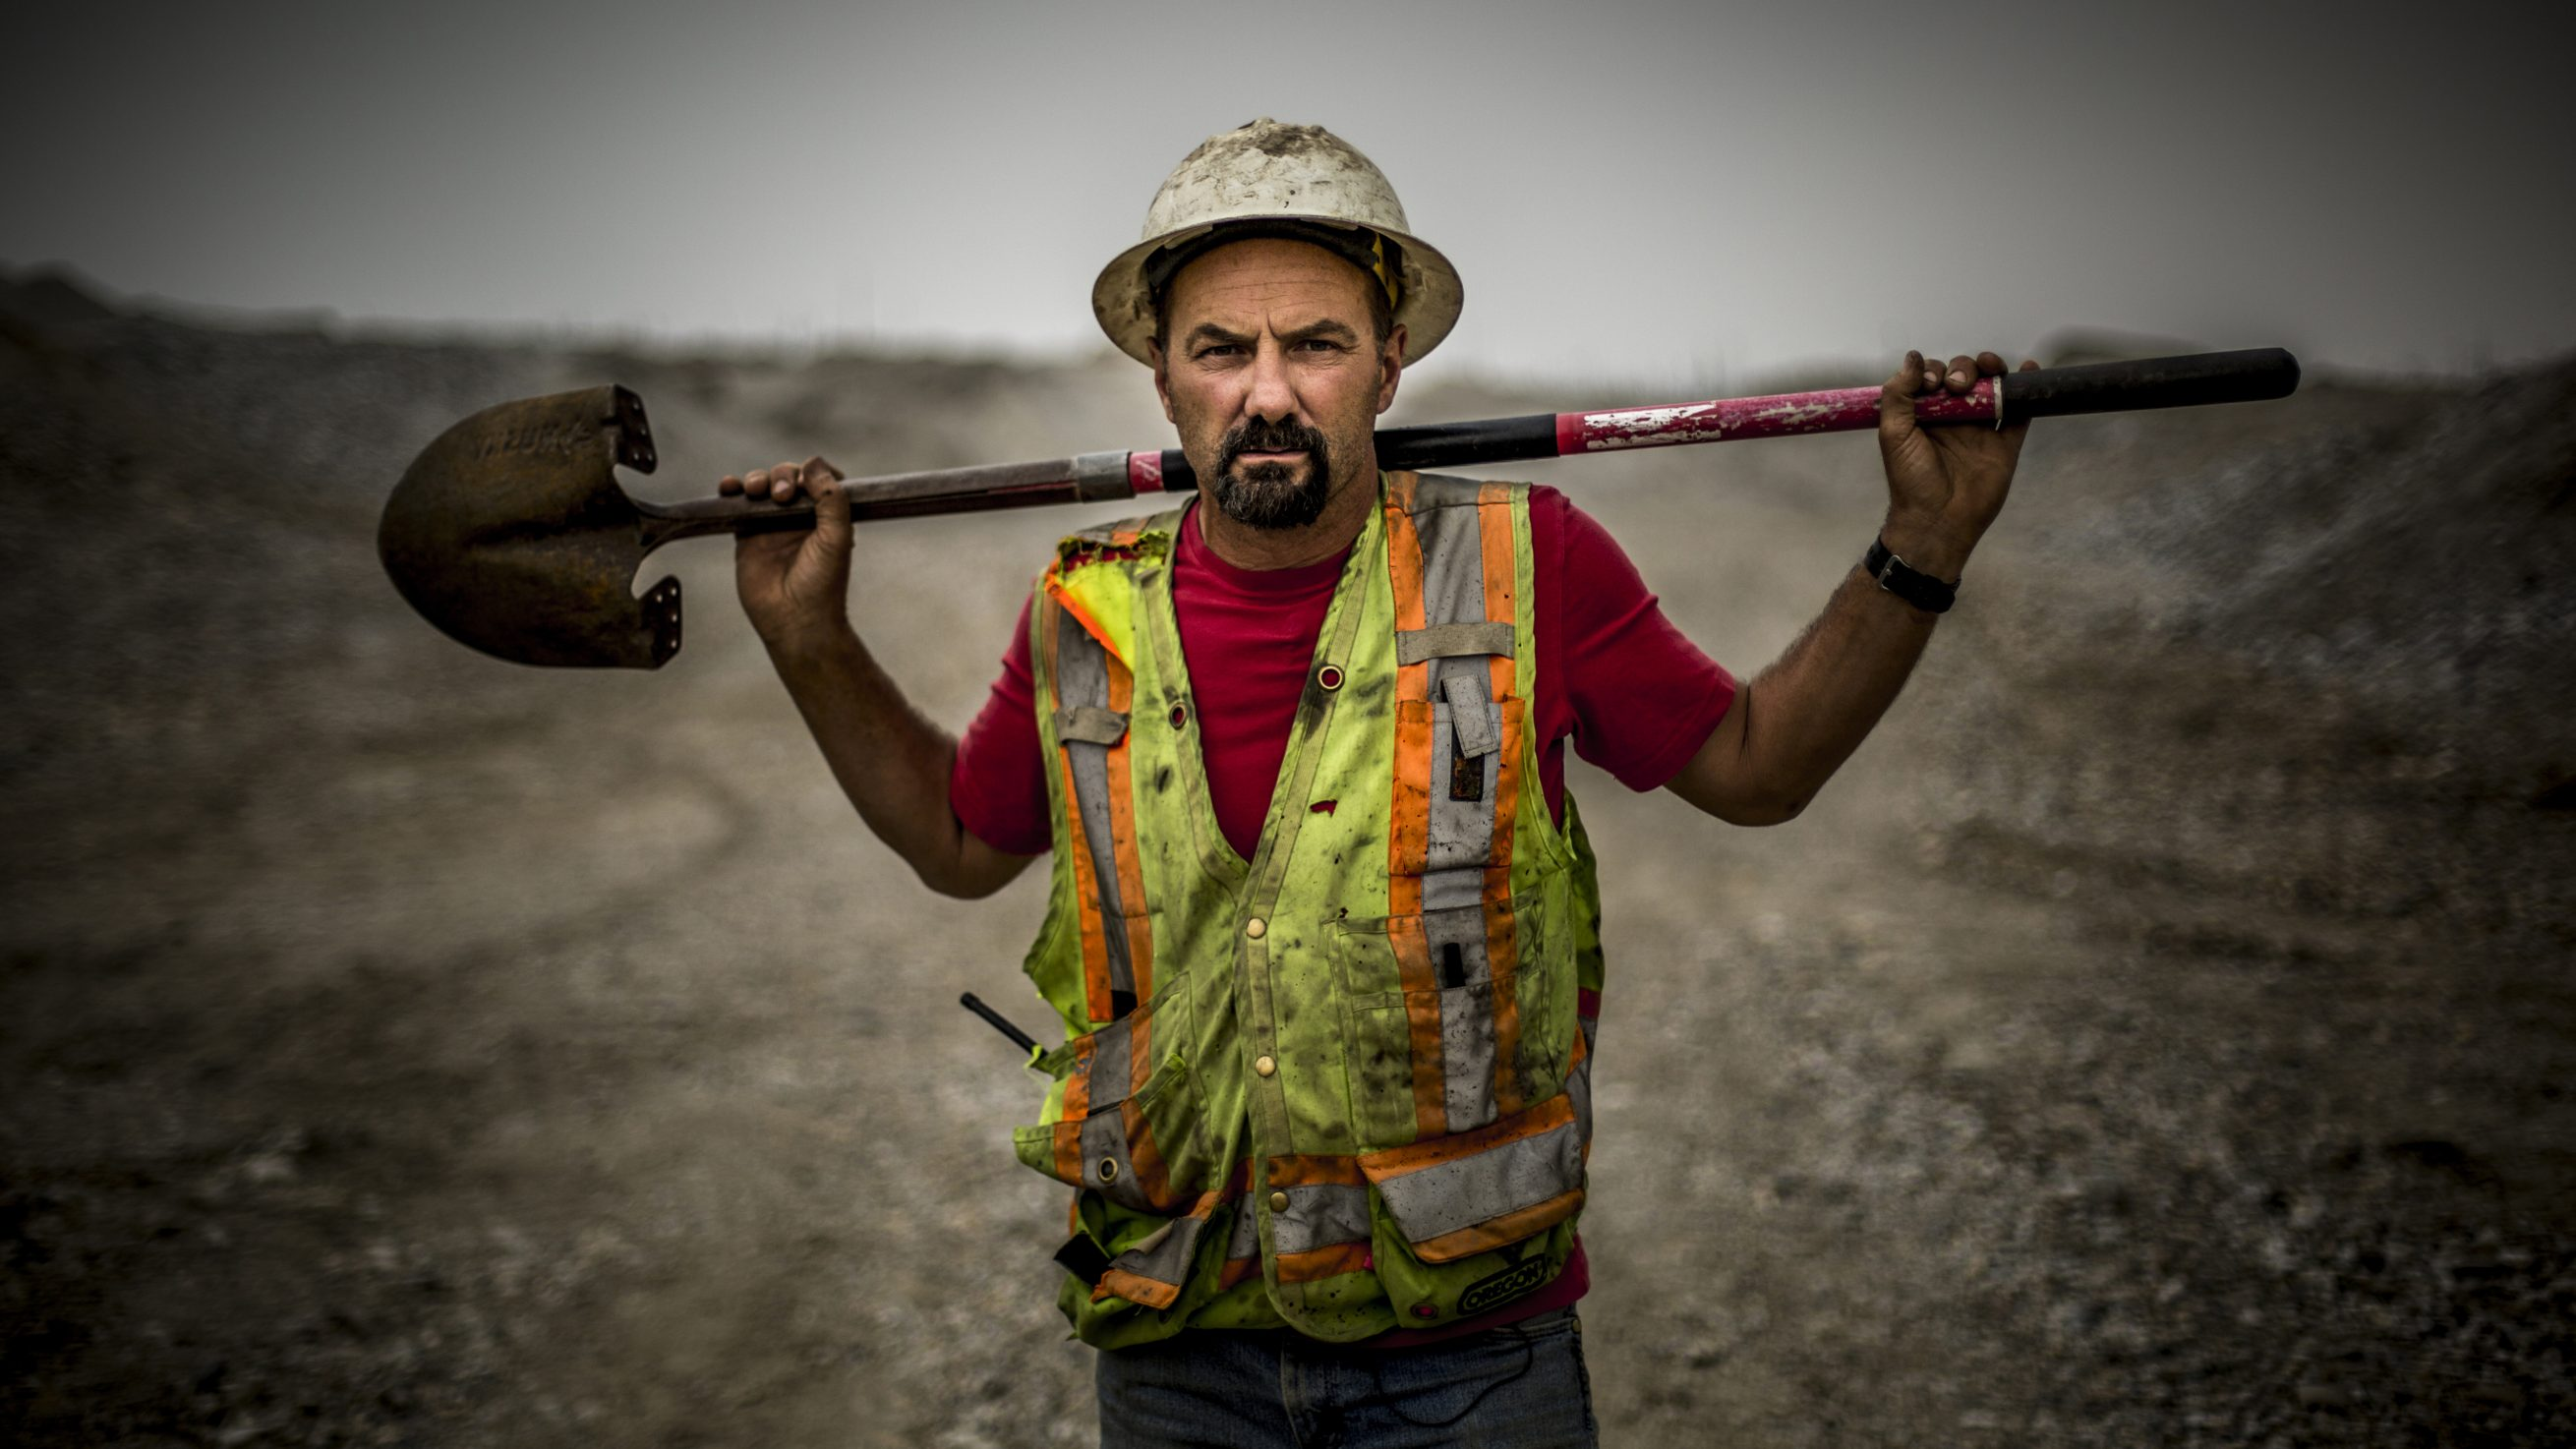 Gold Rush: Dave Turin's Lost Mine Discovery Channel